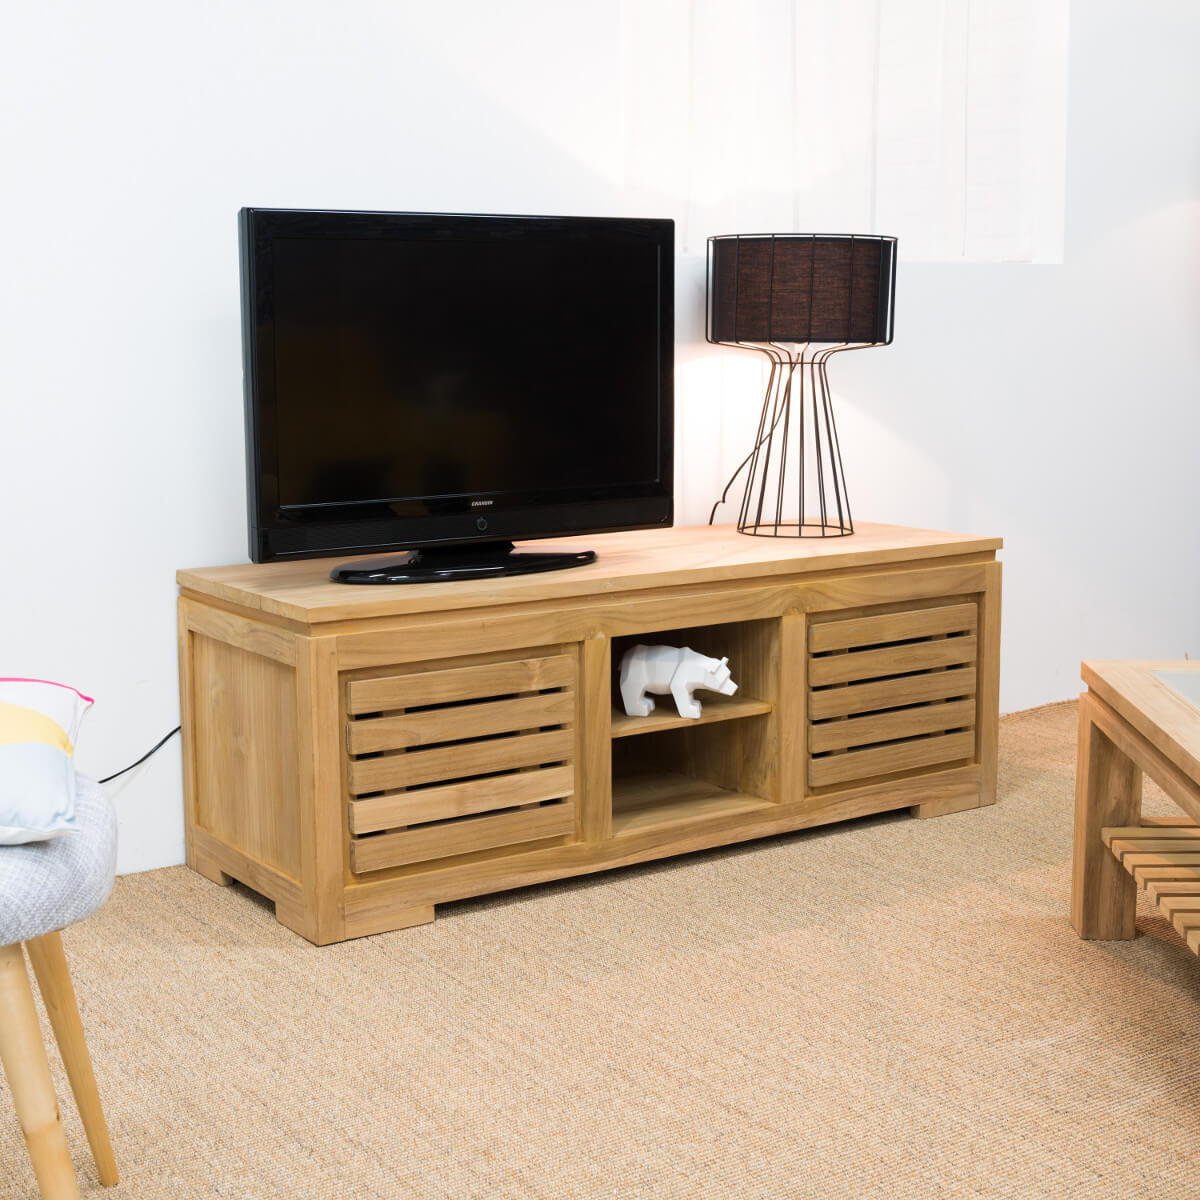 Meuble tv teck meuble tv bois naturel rectangle zen for Table de television en bois